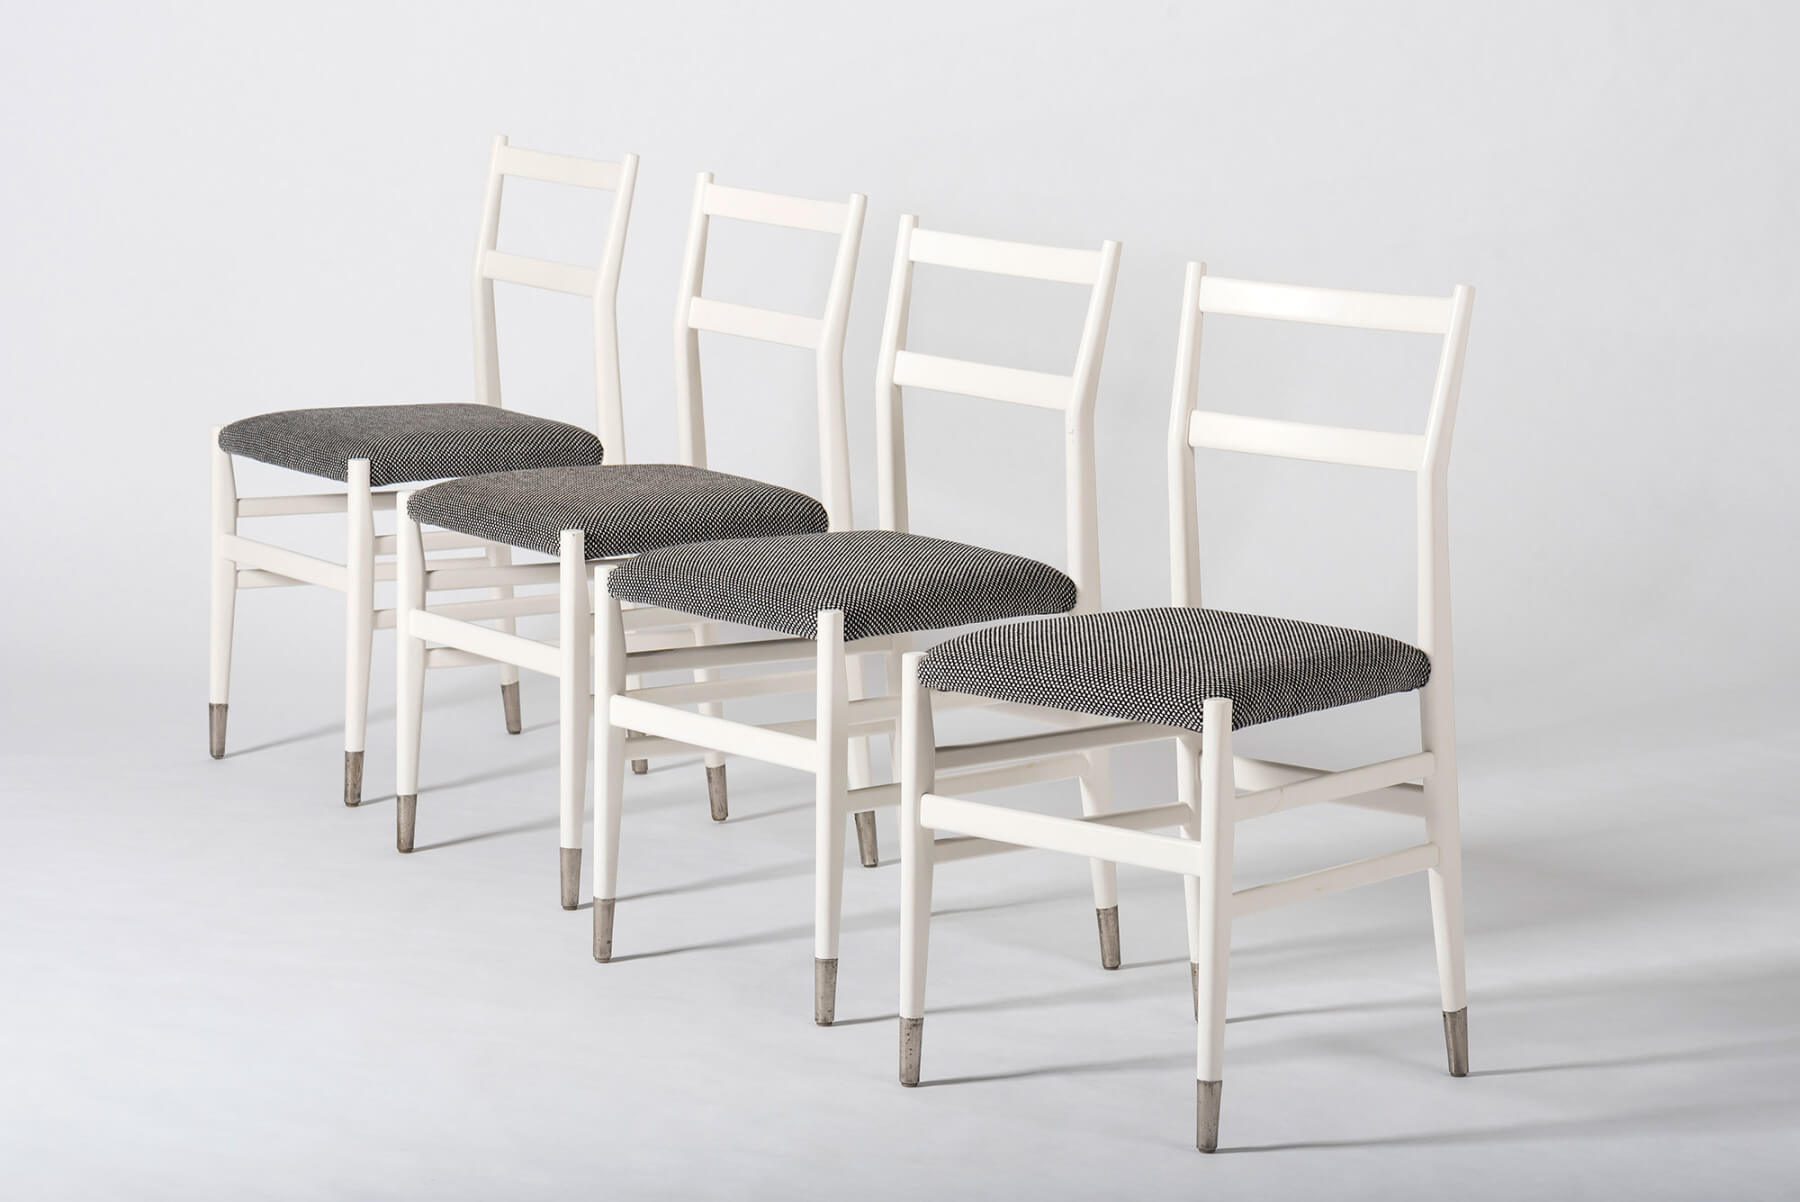 Gio Ponti |   Set of 4 dining chairs model 646/2